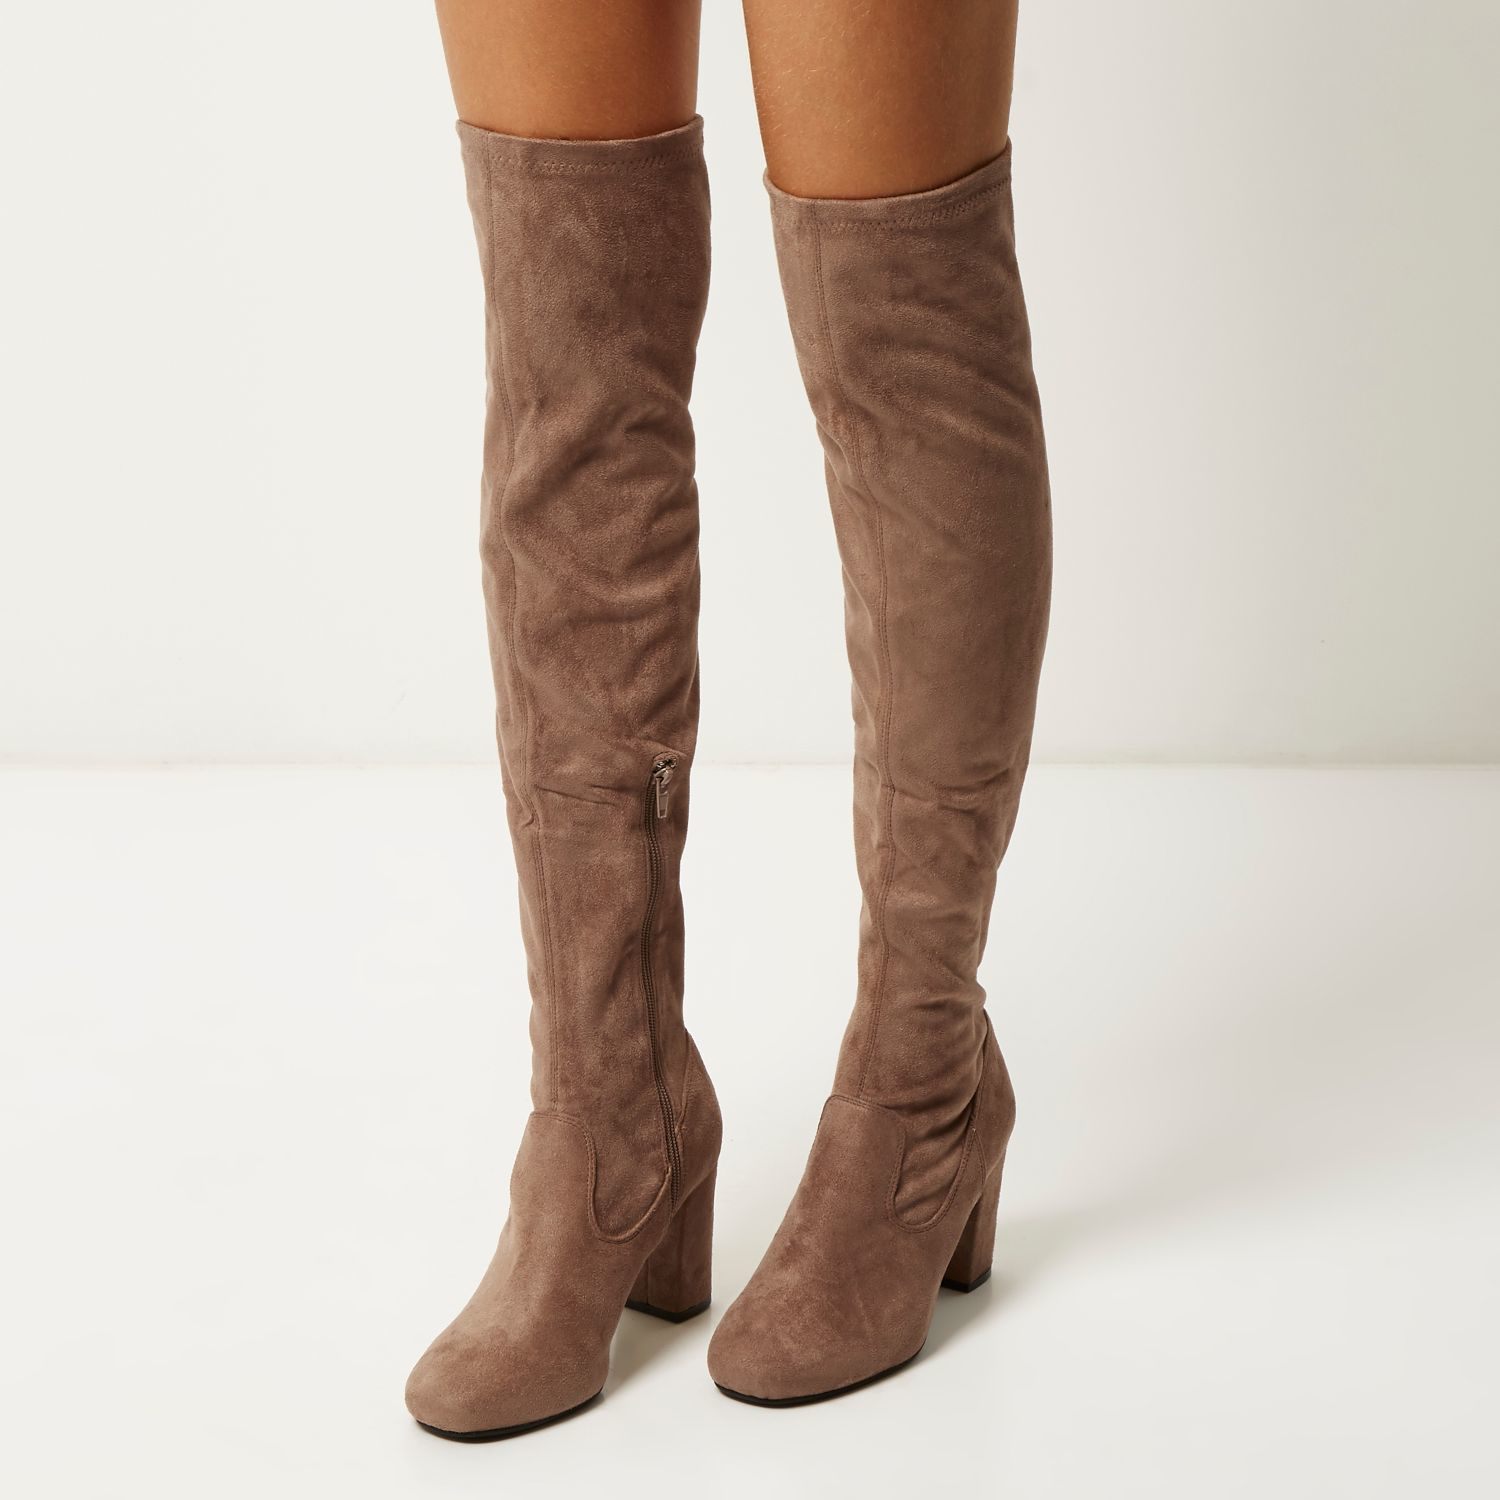 Brown Suede Over The Knee Boots mLkkeEJ8